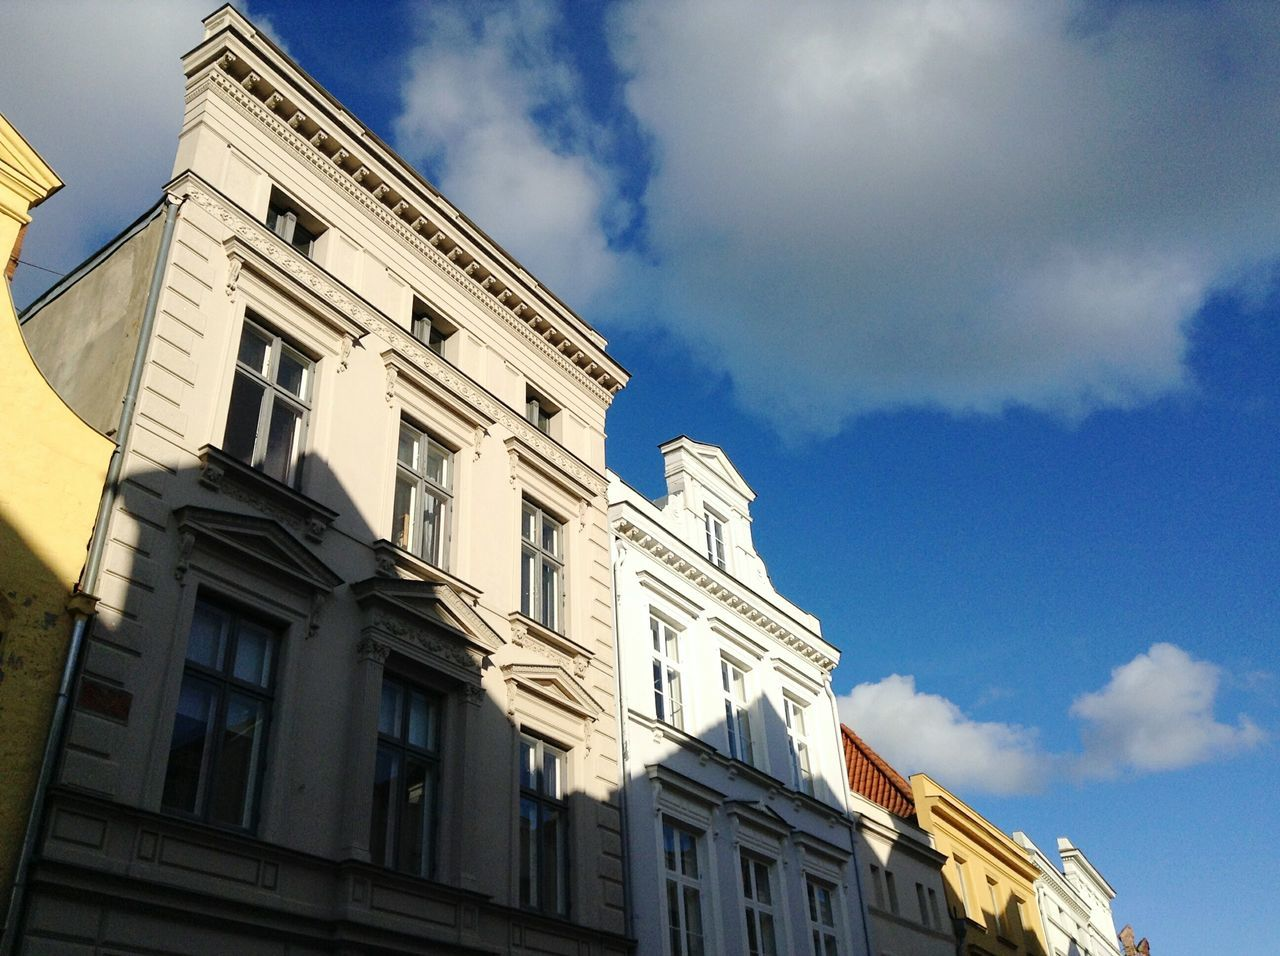 Somewhere in Lübeck. · Germany Schleswig-Holstein Hansestadt Lübeck Hl Old Town Architecture Urban Geometry Urban Landscape Buildings Building Fronts Low Angle View No People Sky Blue Sky